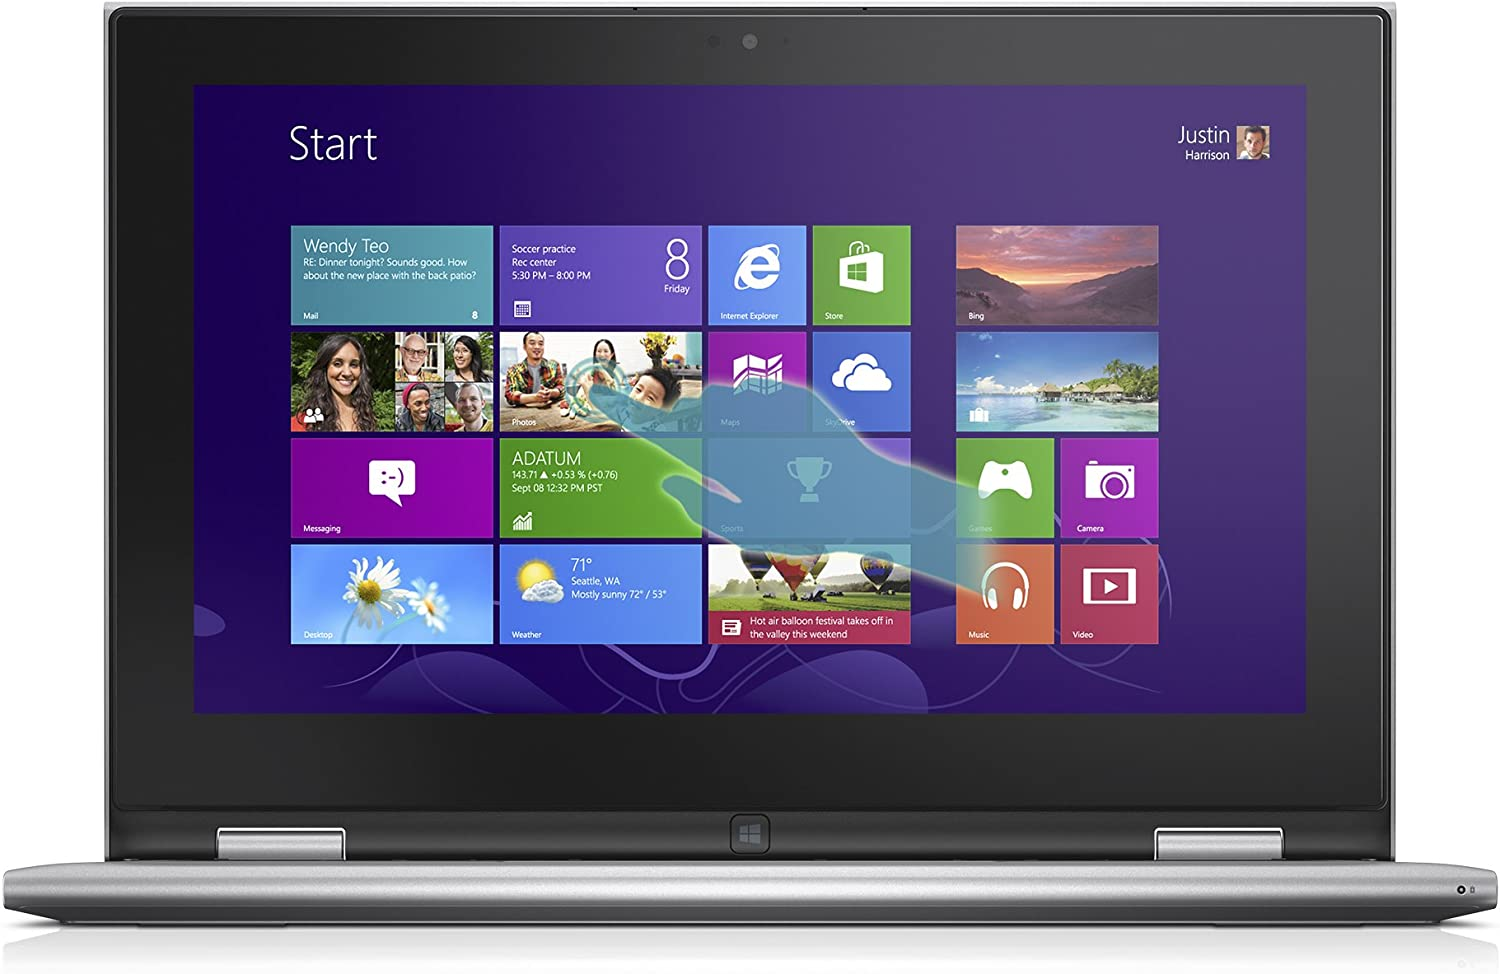 """Dell Inspiron 11 i3147 – 3750slv 11.6"""" 2-In-1 Convertible Laptop - Intel Pentium Quad-Core N3530 Processor 2.16Ghz - 4GB 500GB - Touch Screen - Win 8.1 [Discontinued By Manufacturer]"""